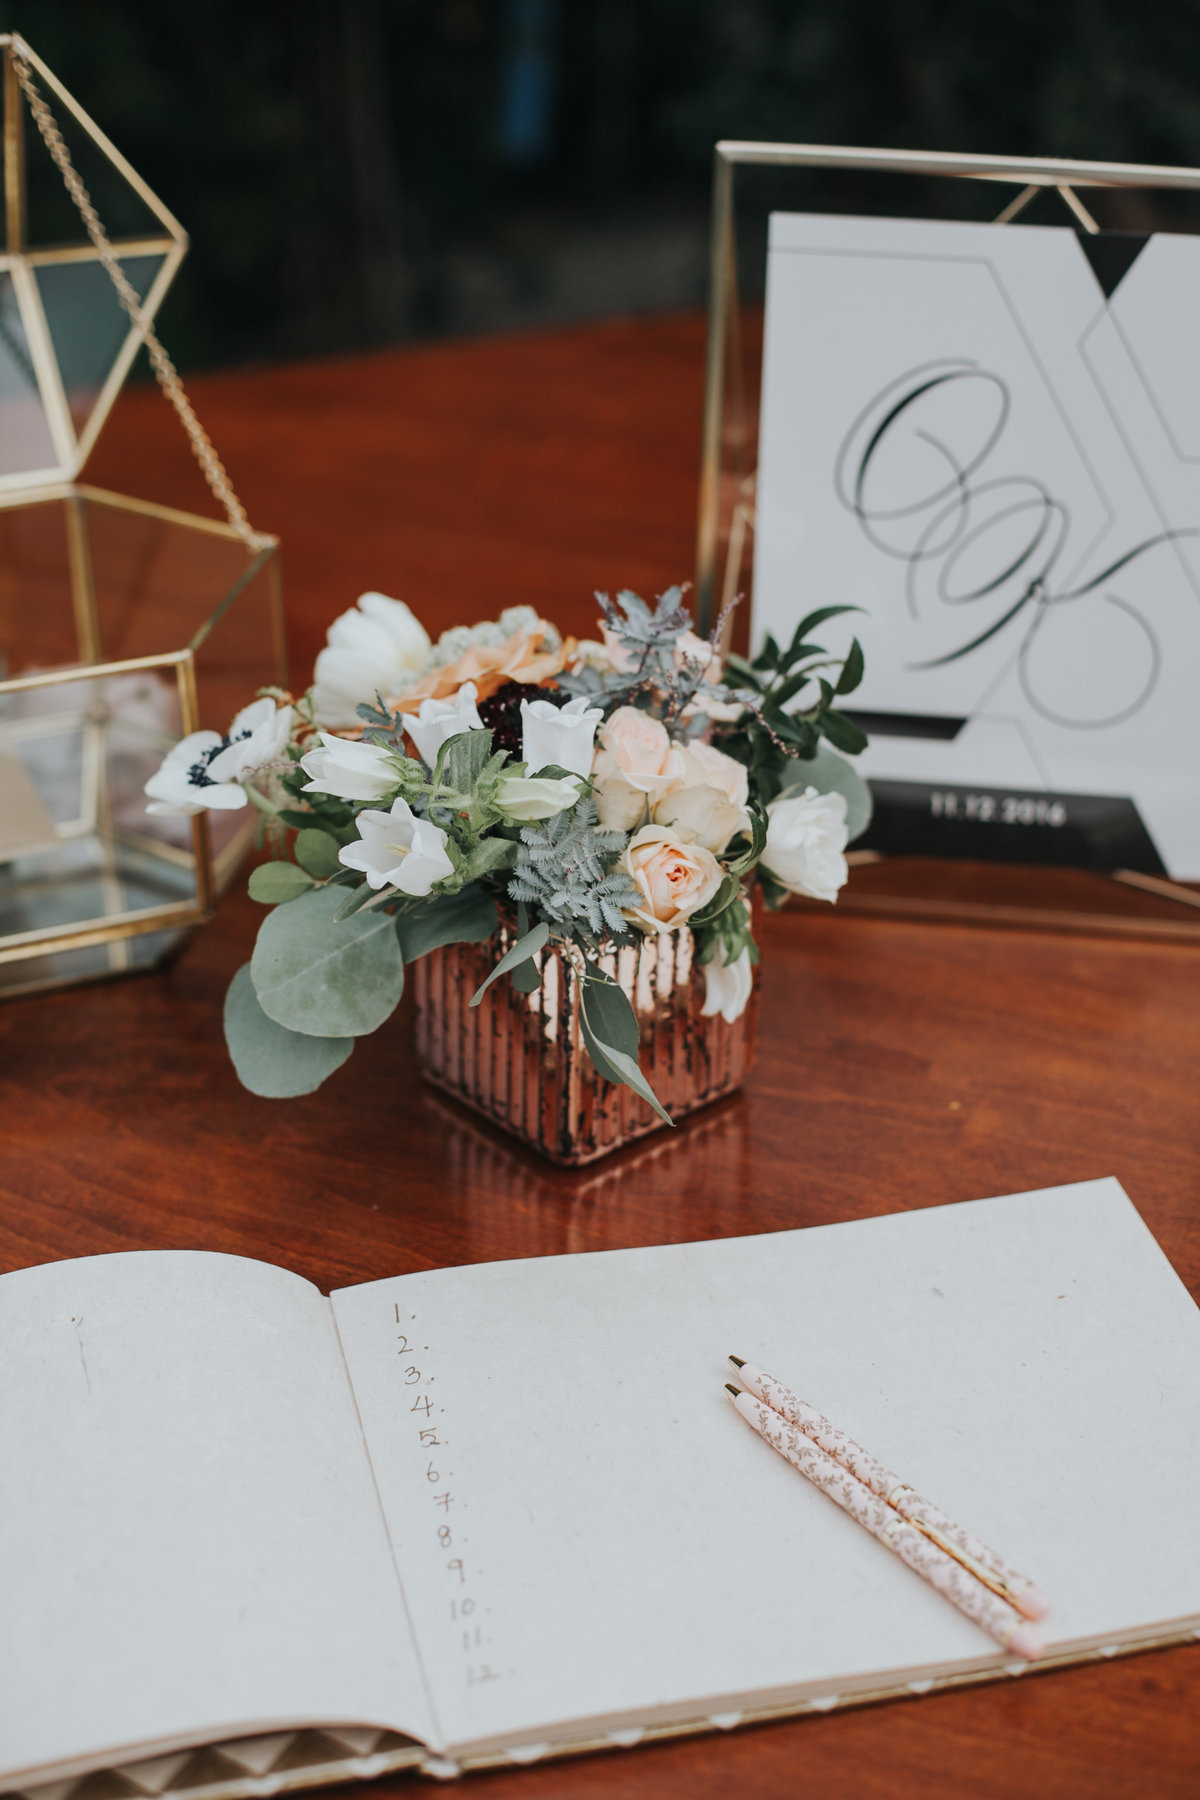 Wedding welcome table guest book and white floral arrangement with eucalyptus leaves